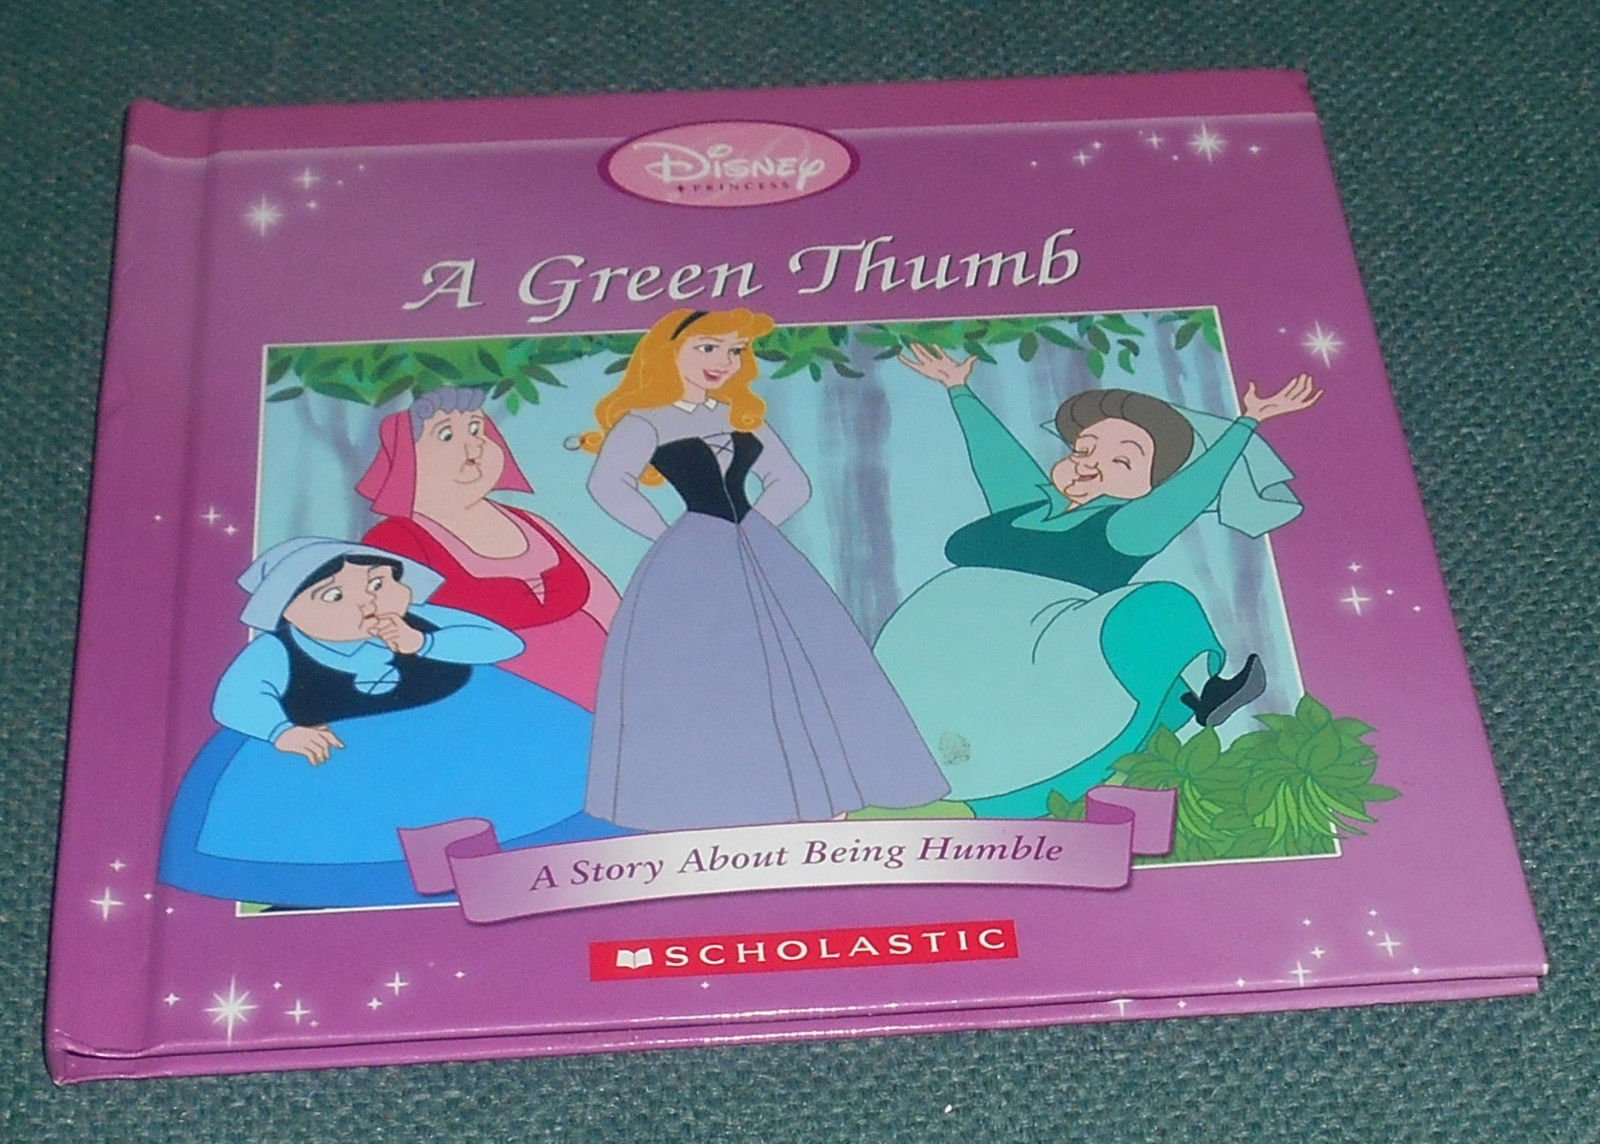 A Green Thumb: A Story About Being Humble (Disney Princess) ebook